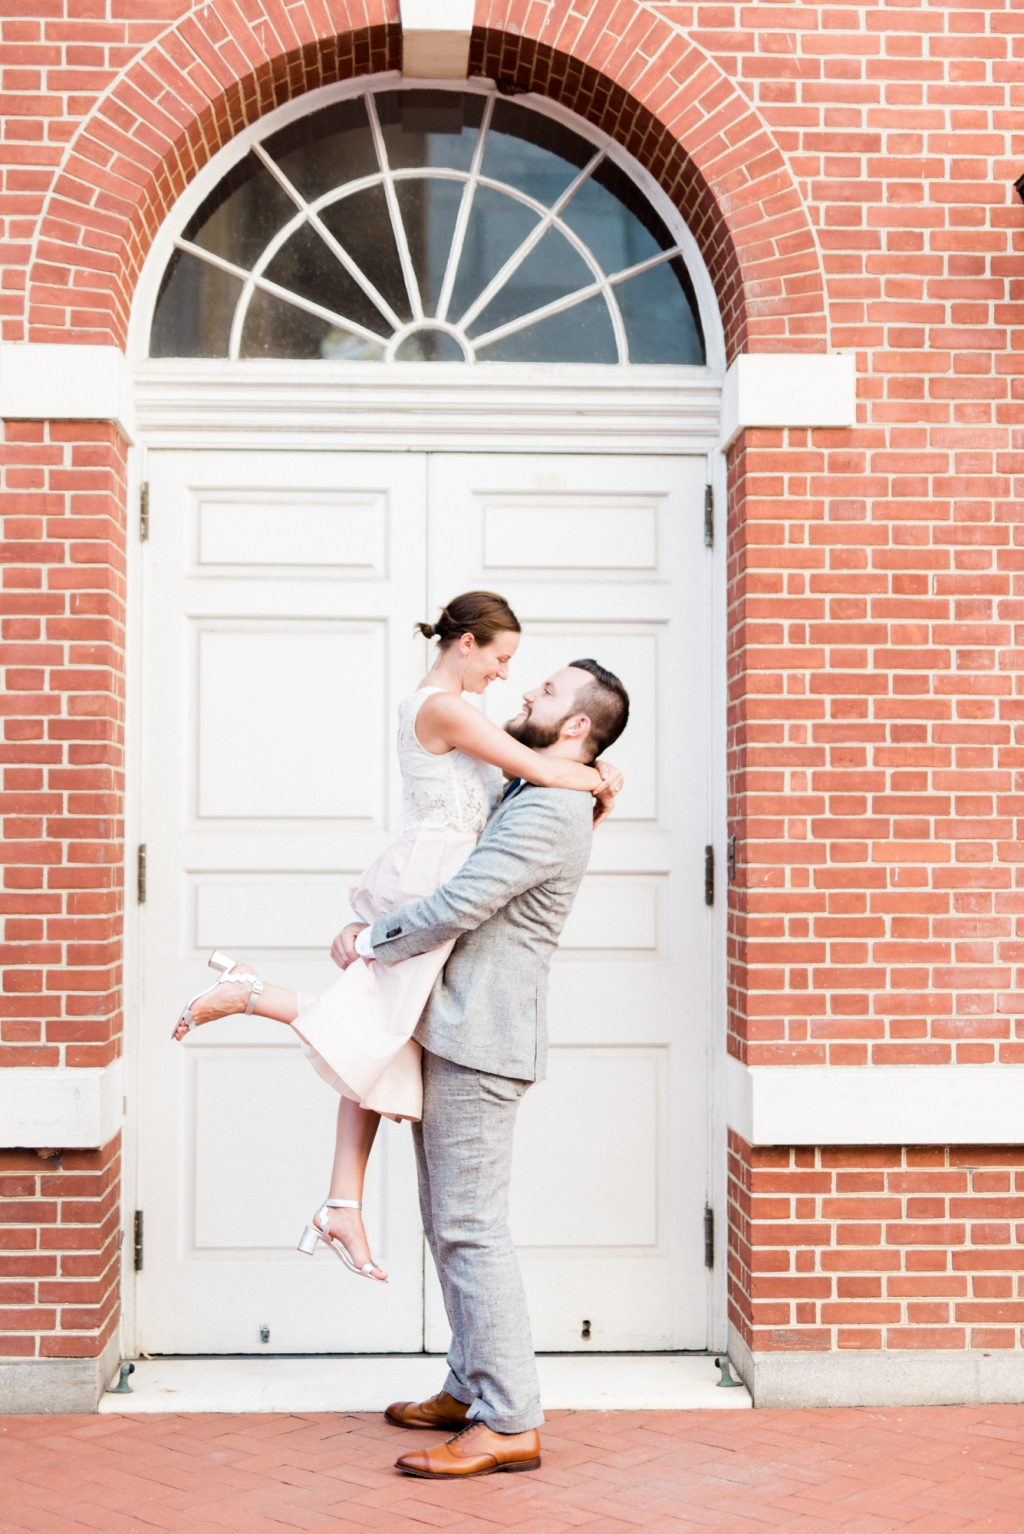 haley-richter-photography-intimate-summer-wedding-palomar-hotel-old-city-philadelphia-102